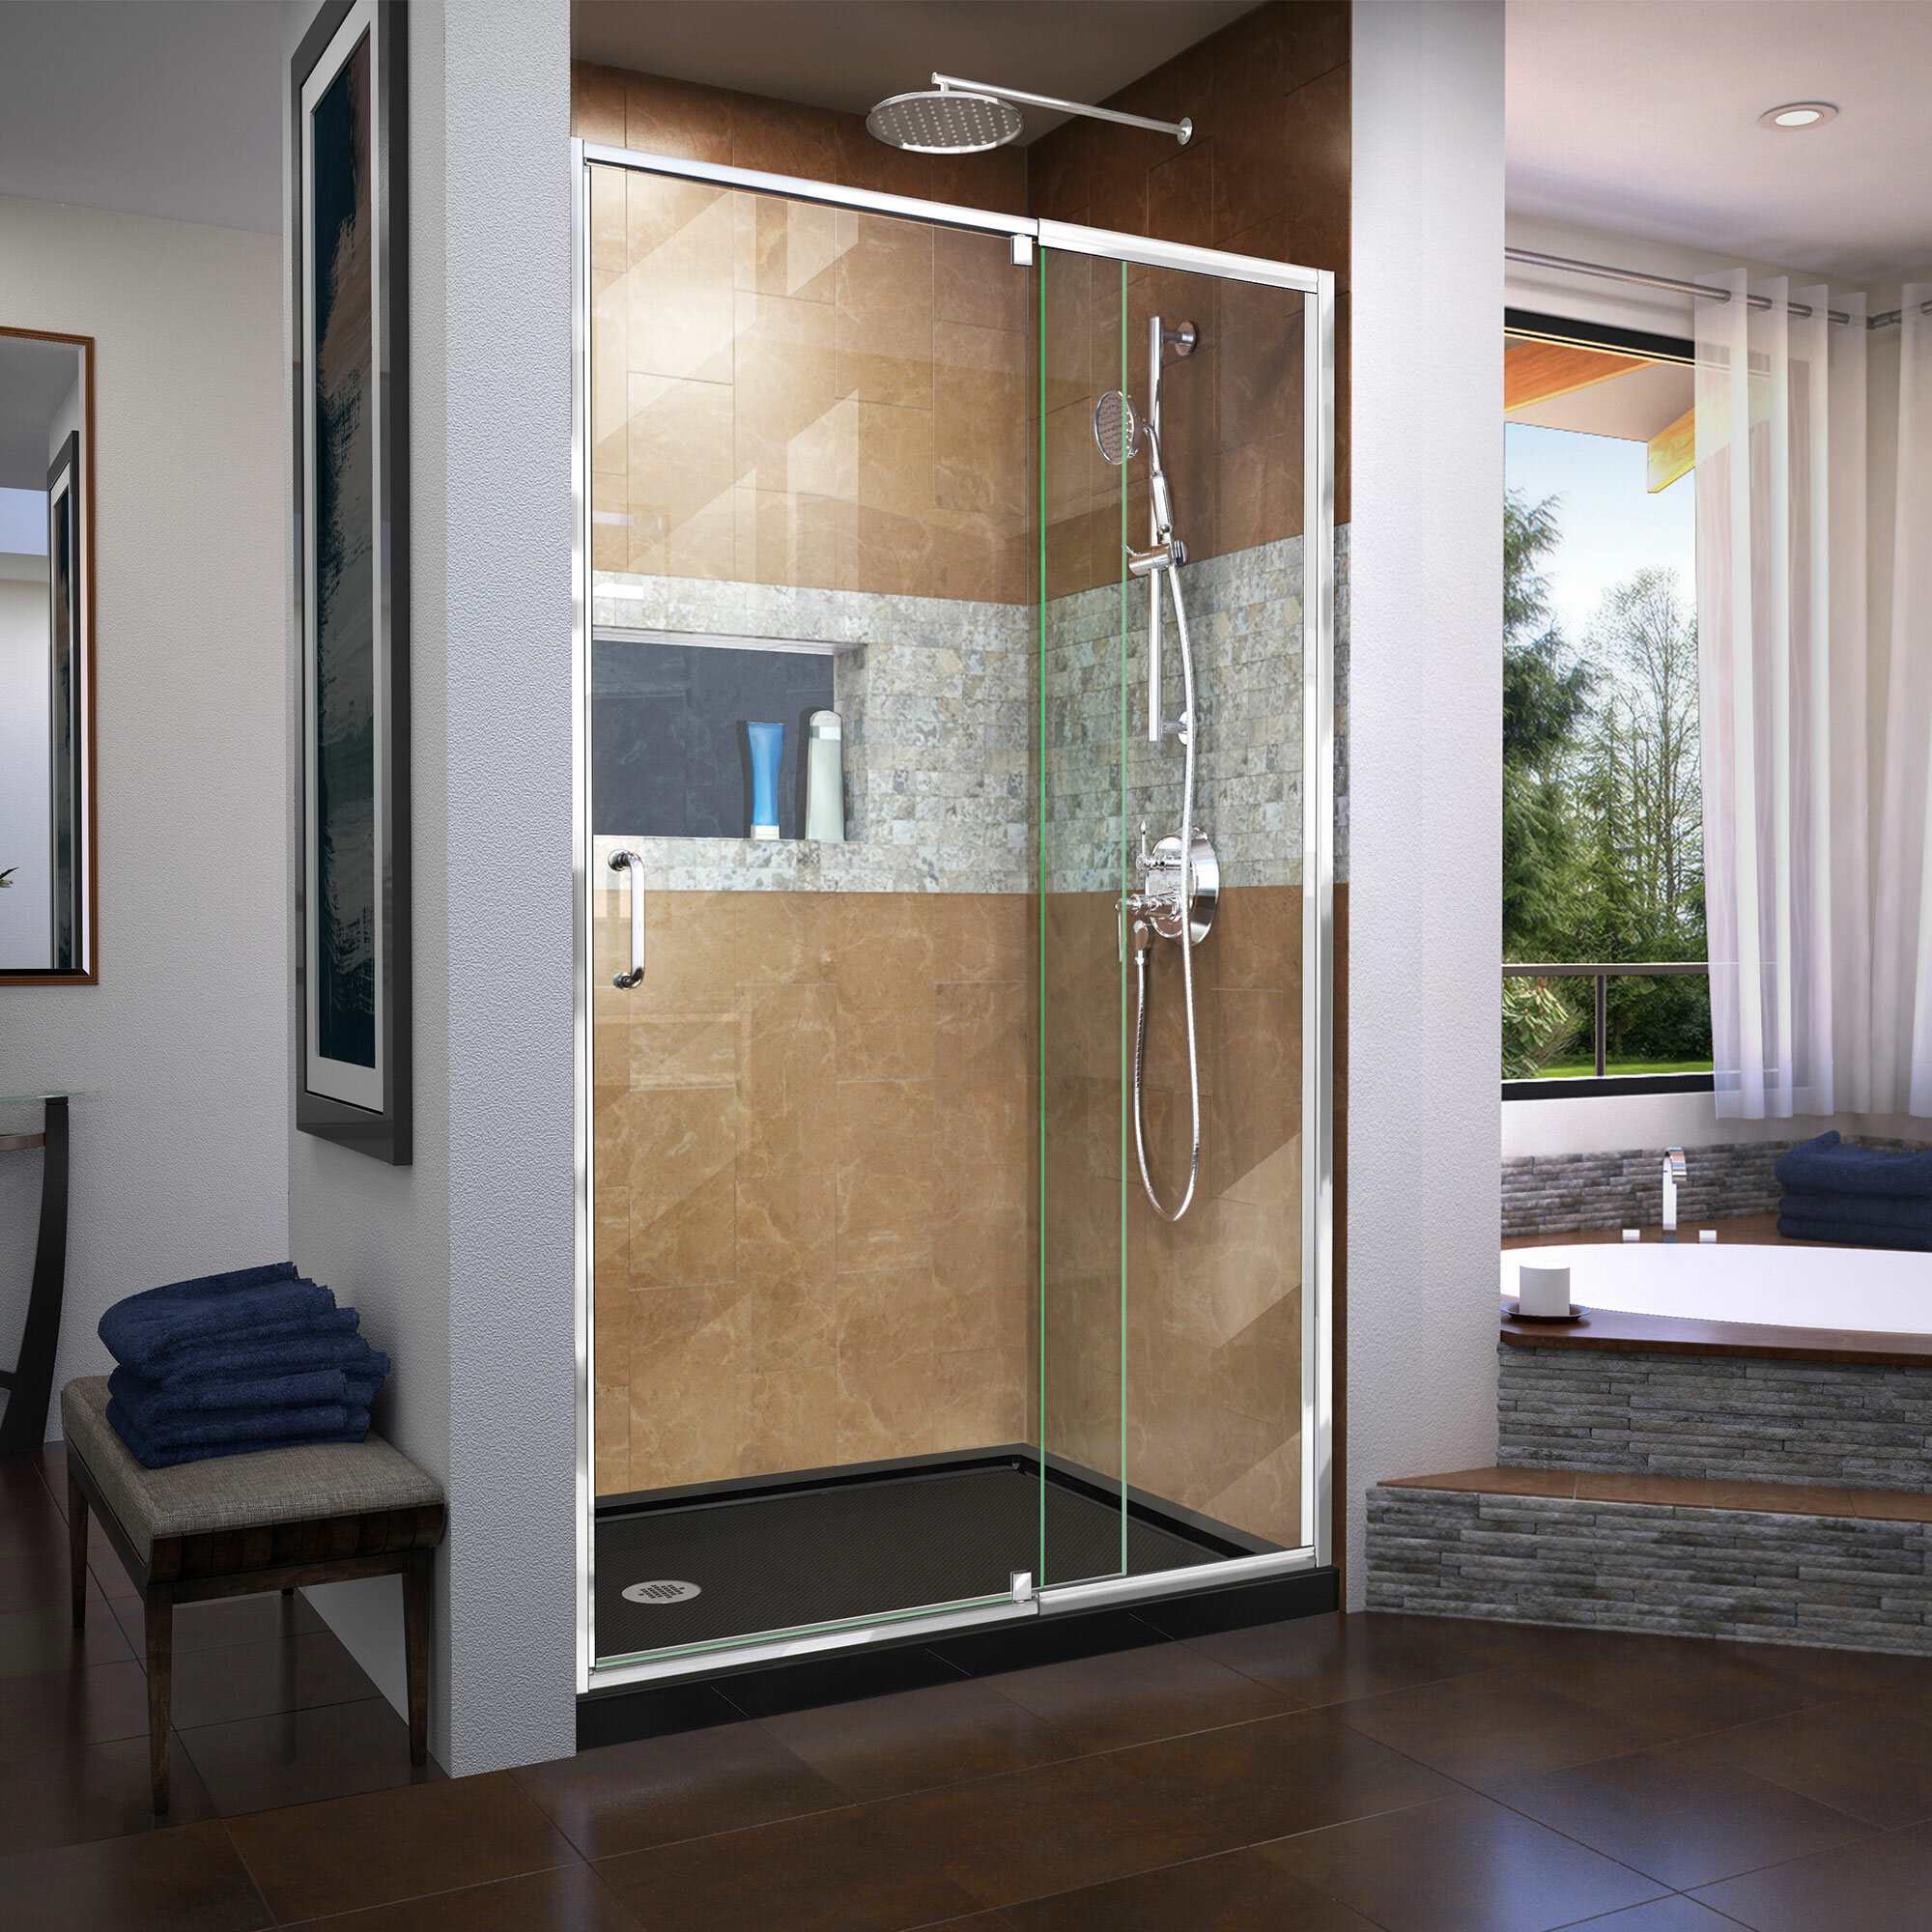 Dreamline Flex 44 48 In W X 72 In H Semi Frameless Pivot Shower